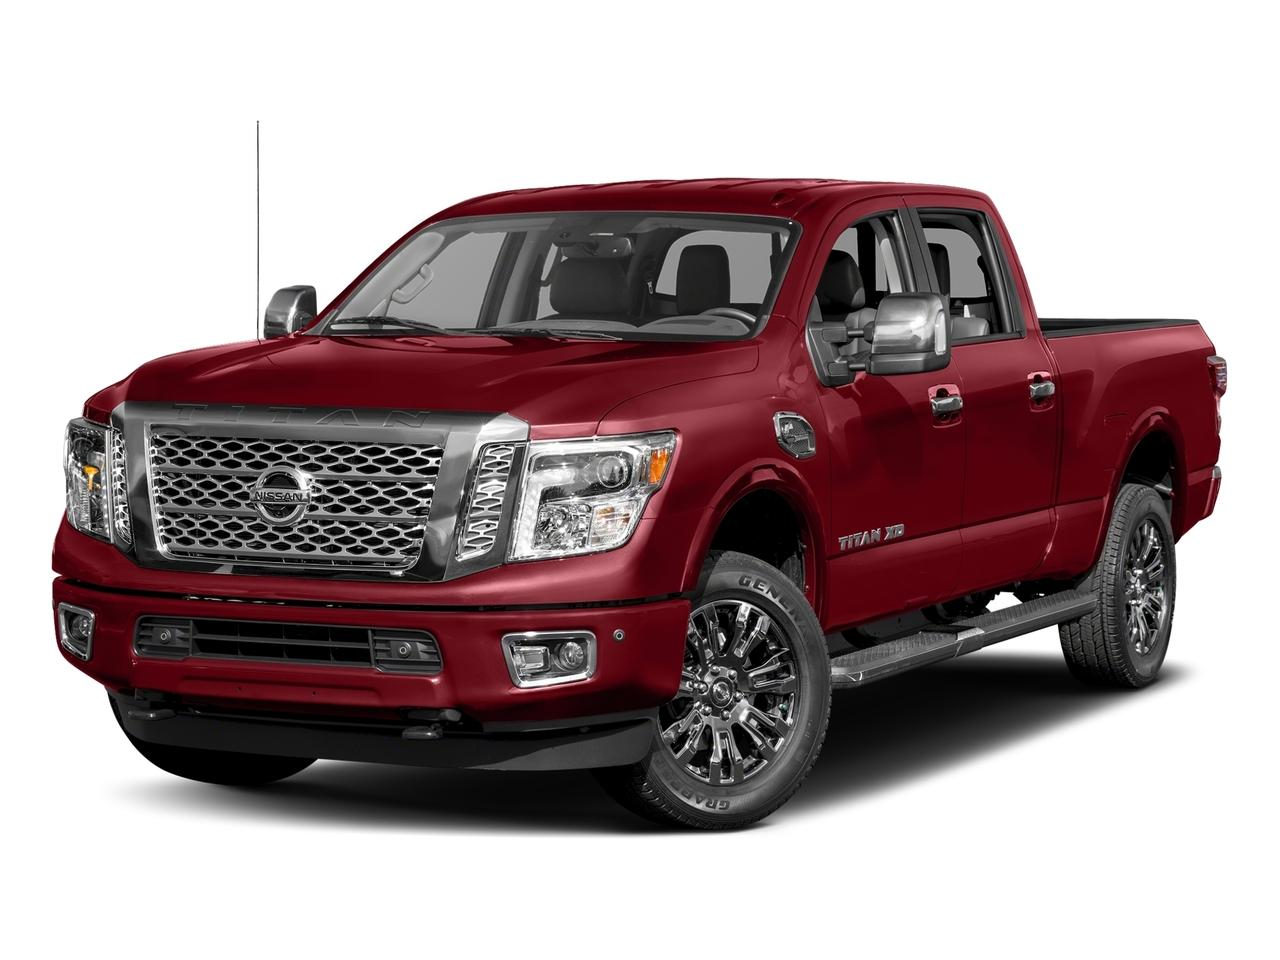 2017 Nissan Titan XD Vehicle Photo in OKLAHOMA CITY, OK 73131